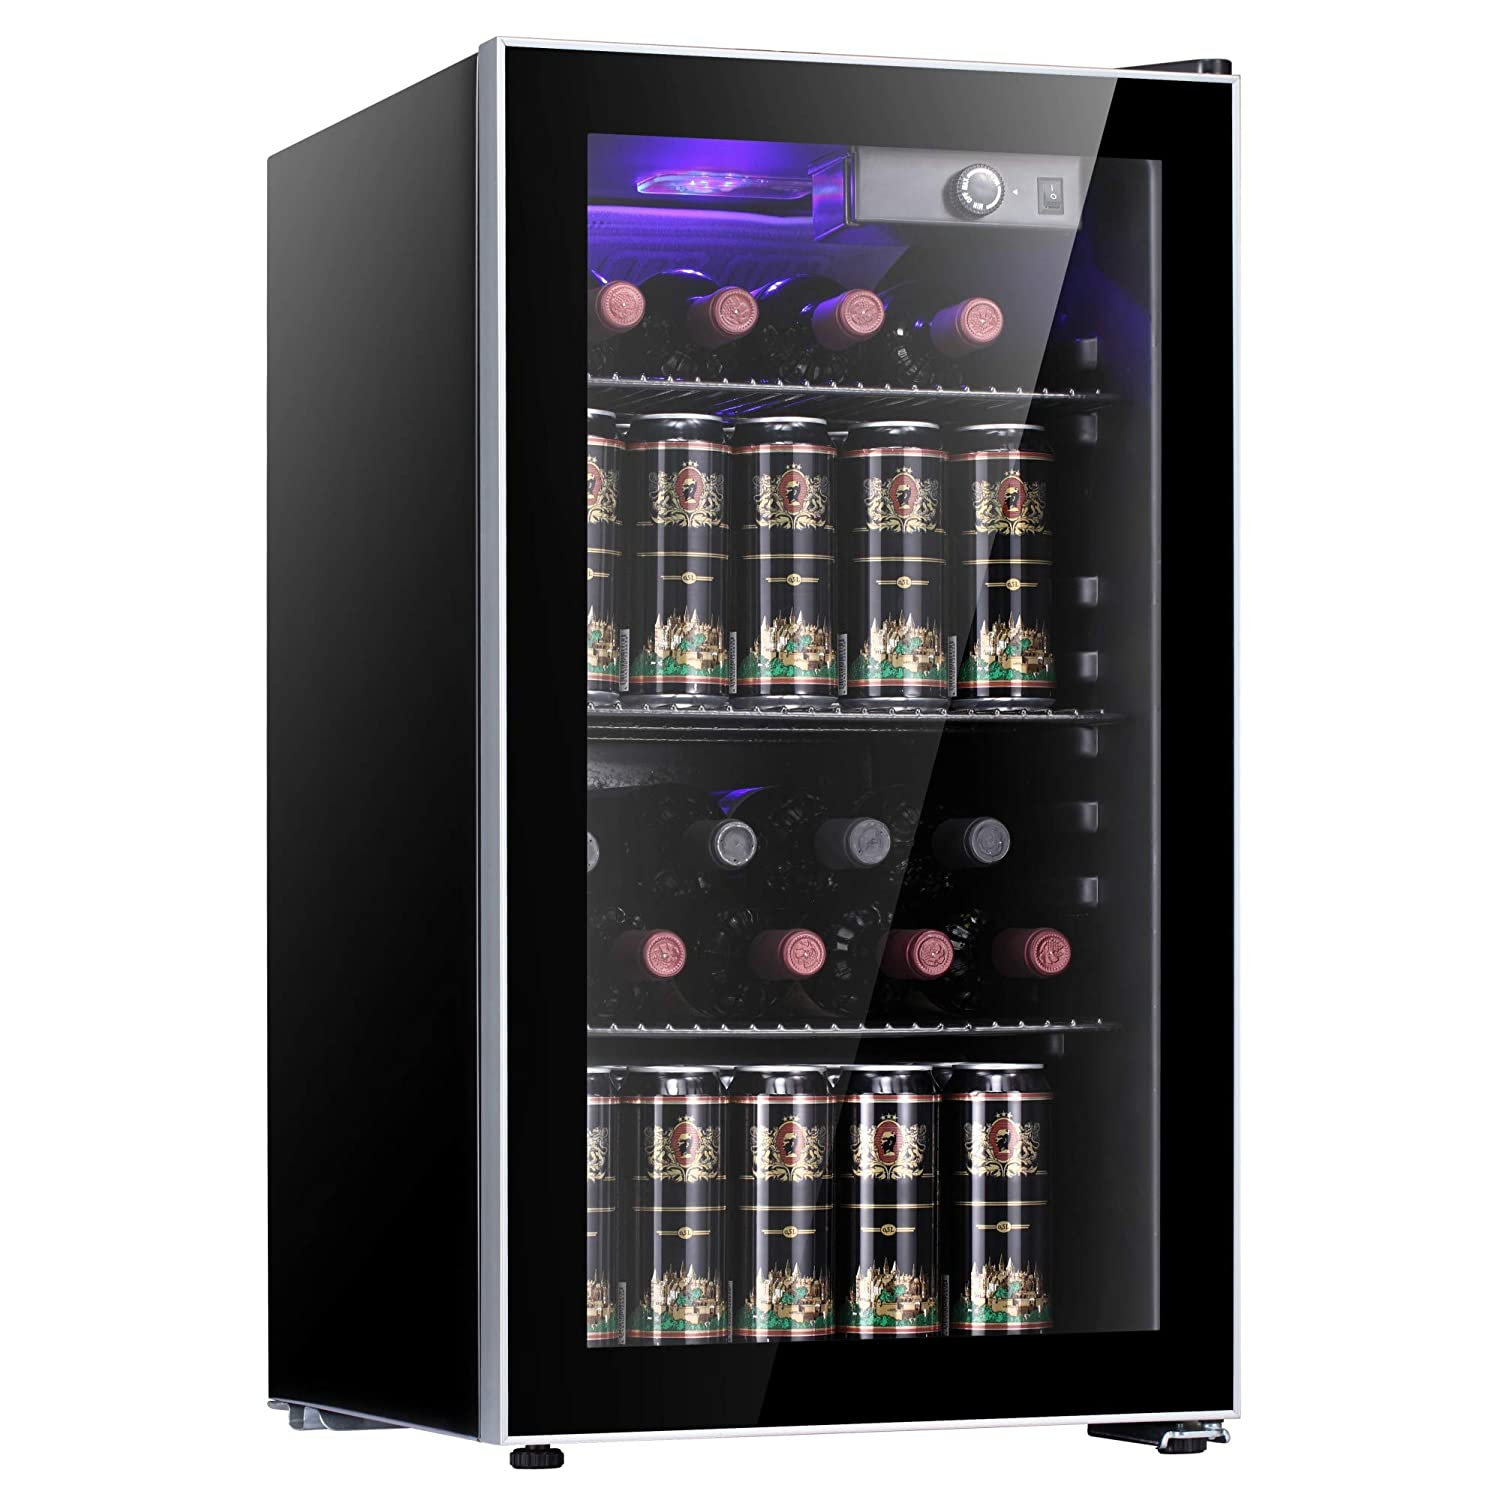 JAMFLY 17 Bottle Refigerator Wine Cooler/Cabinet Counter Top Wine Cellar with Compressor, Freestanding/Bottle Refrigerator,Quiet Operation Fridge,Black